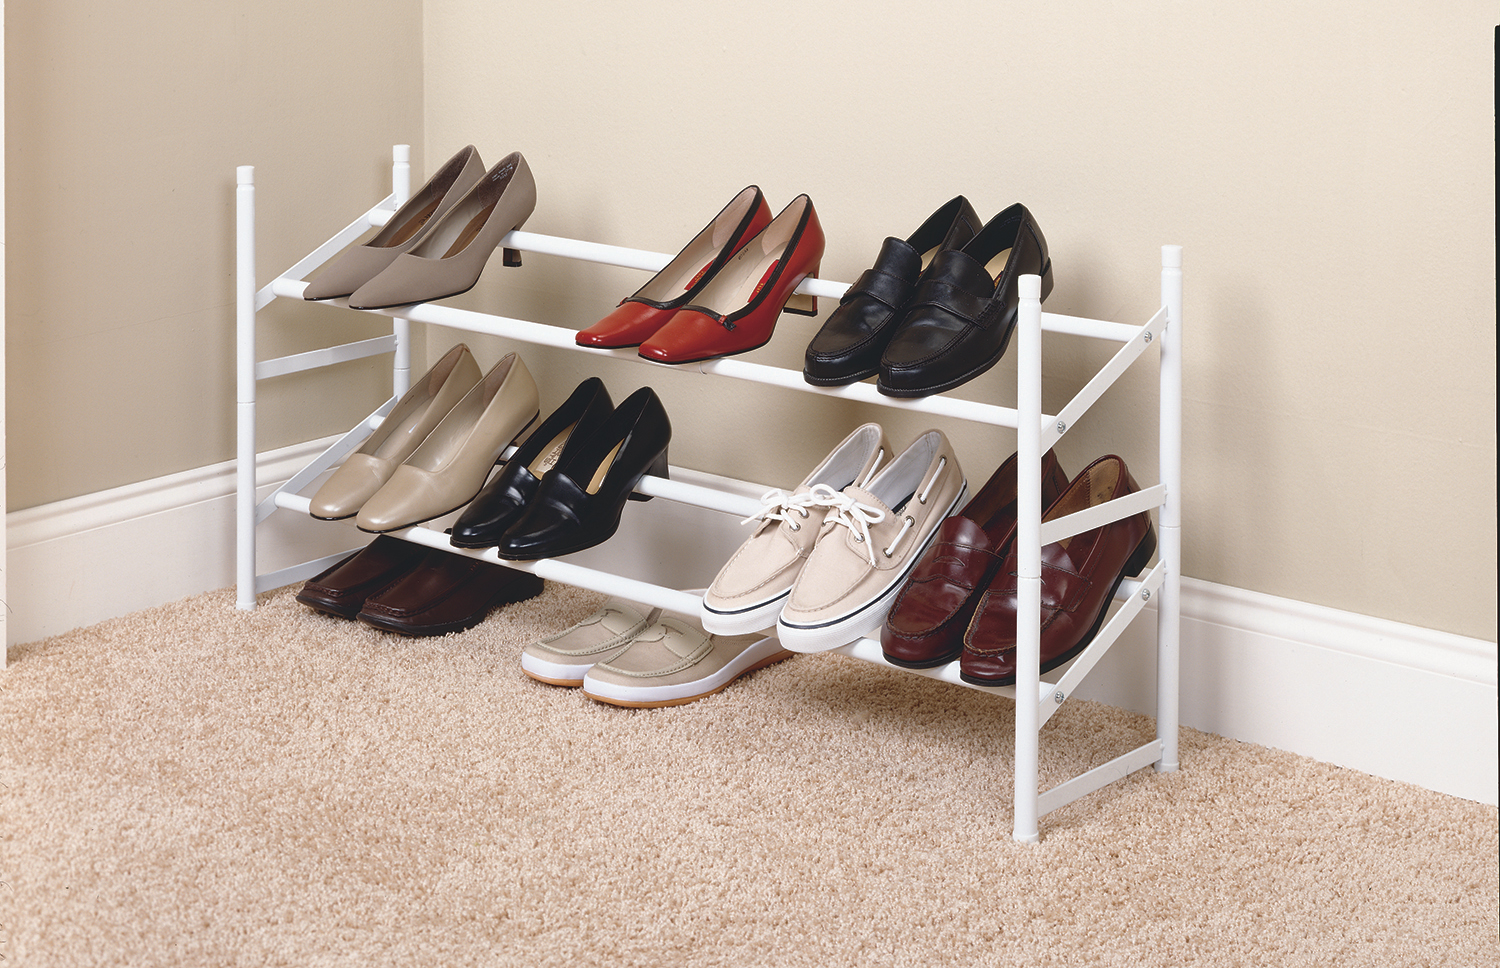 5 Ways To Store Your Shoes